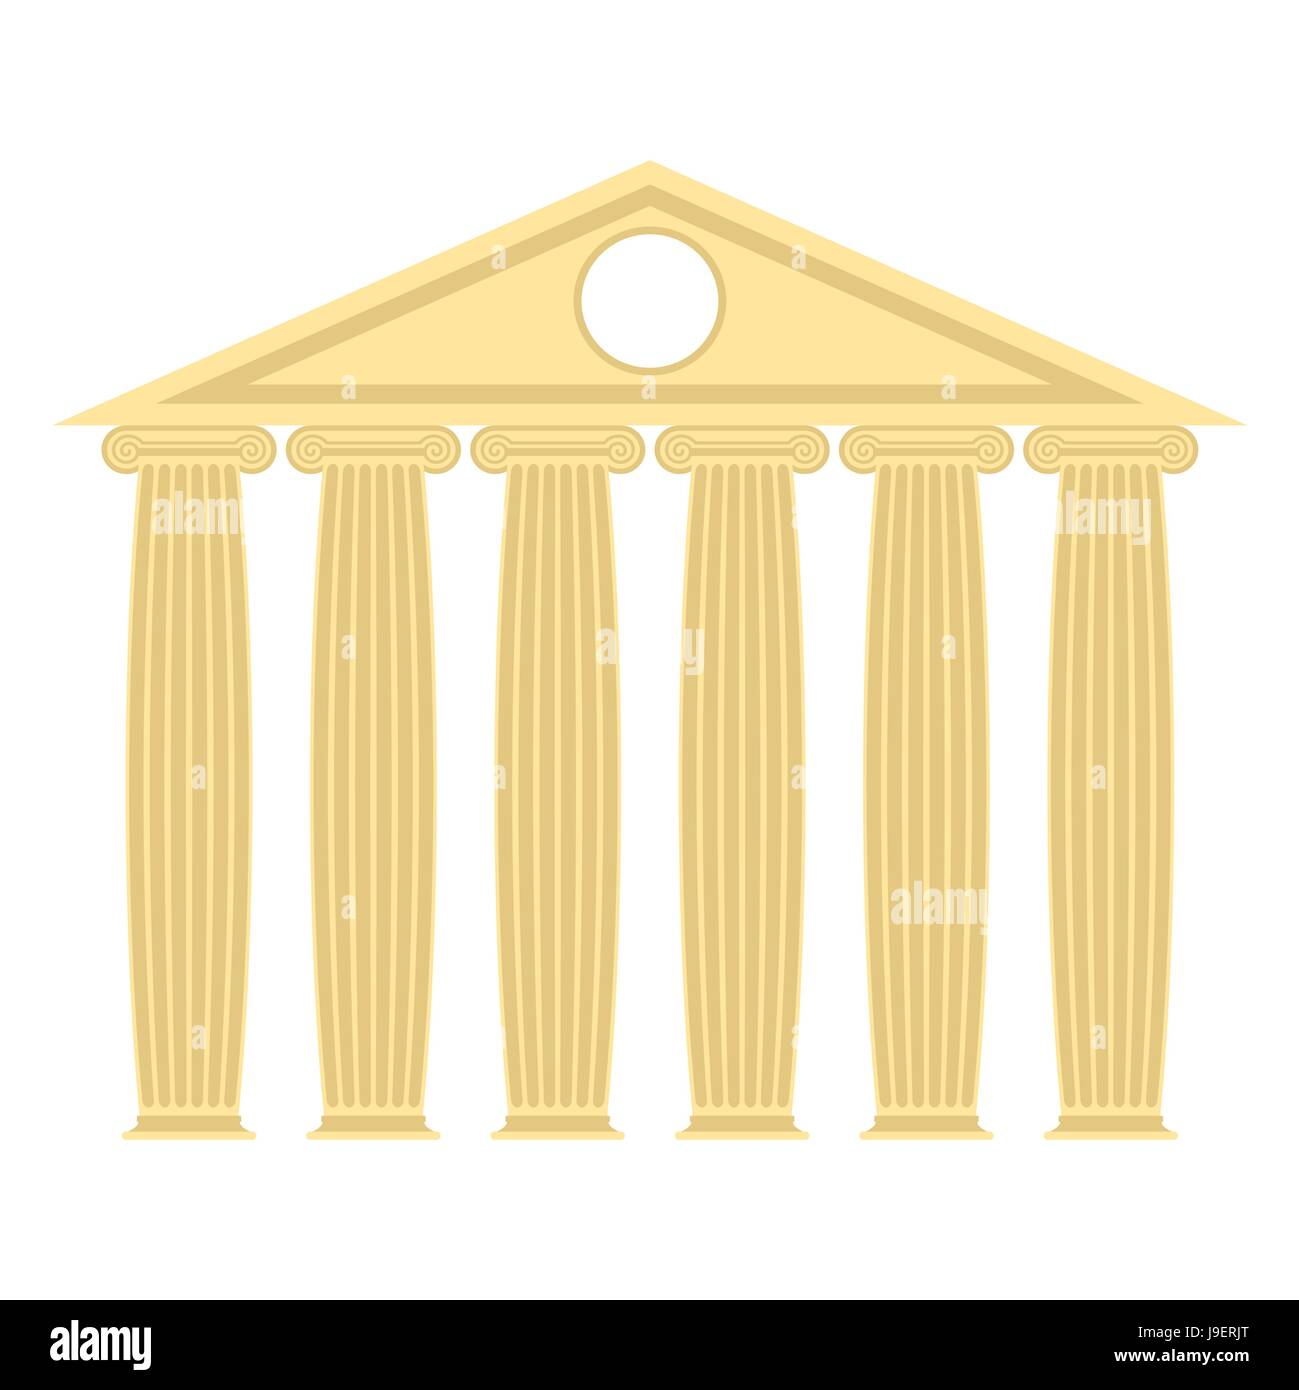 Greek temple with columns and roof. Vector illustration of ancient architecture. - Stock Vector